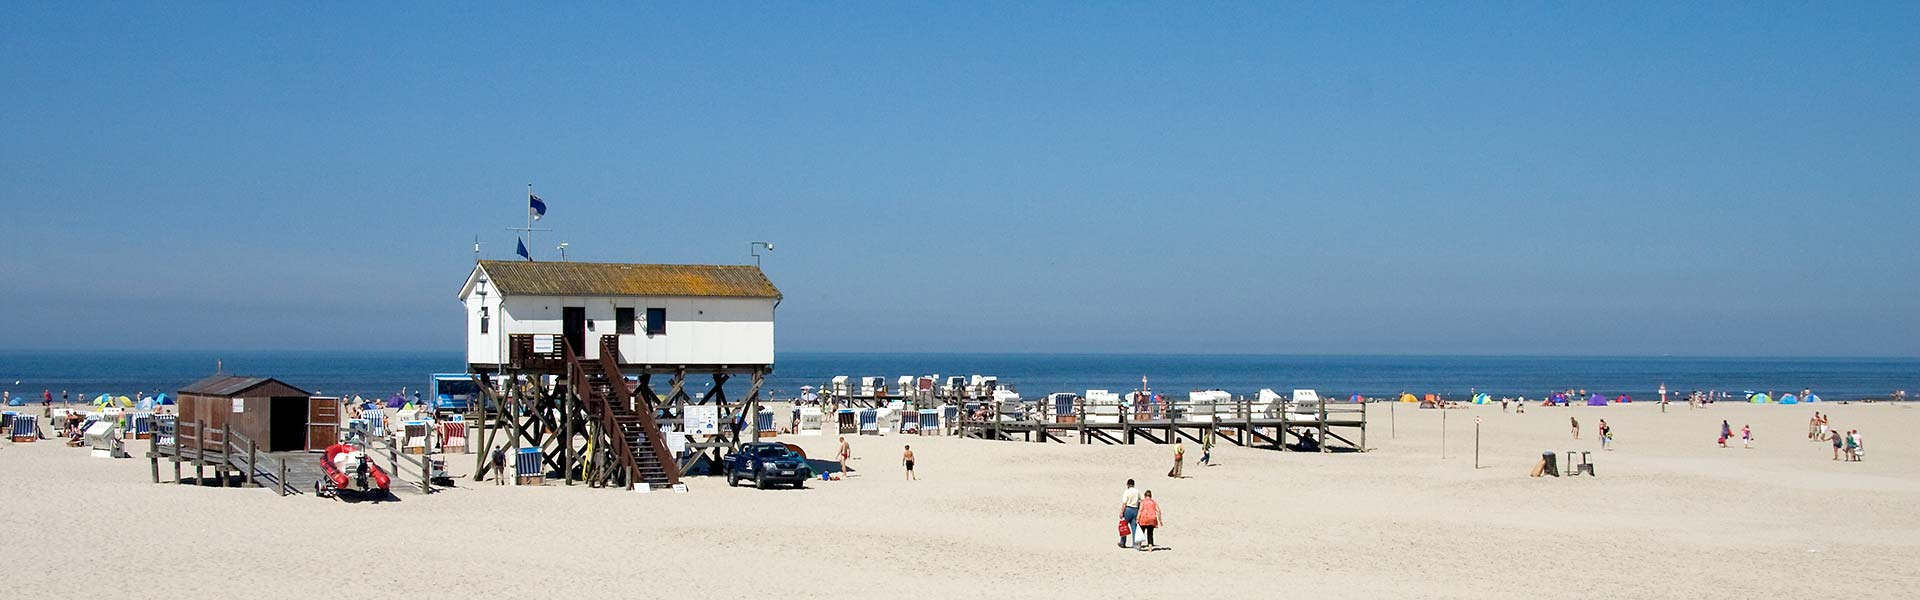 Urlaub in St. Peter-Ording